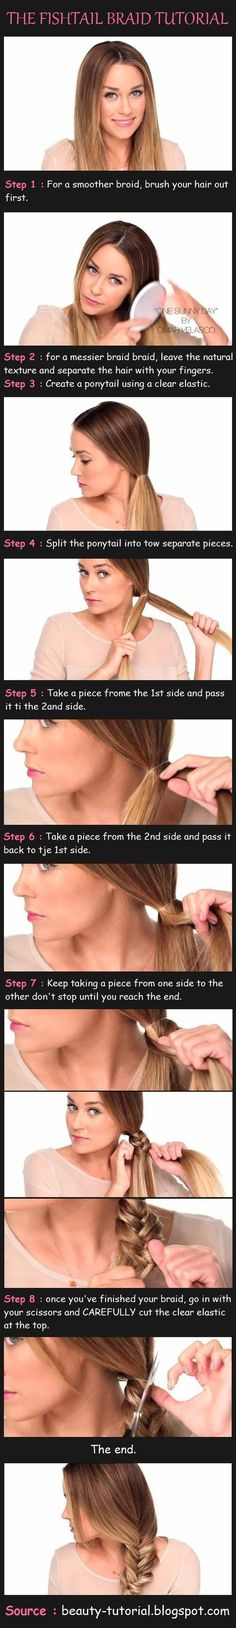 fish-tail braid tutorial... finally figured it out :)